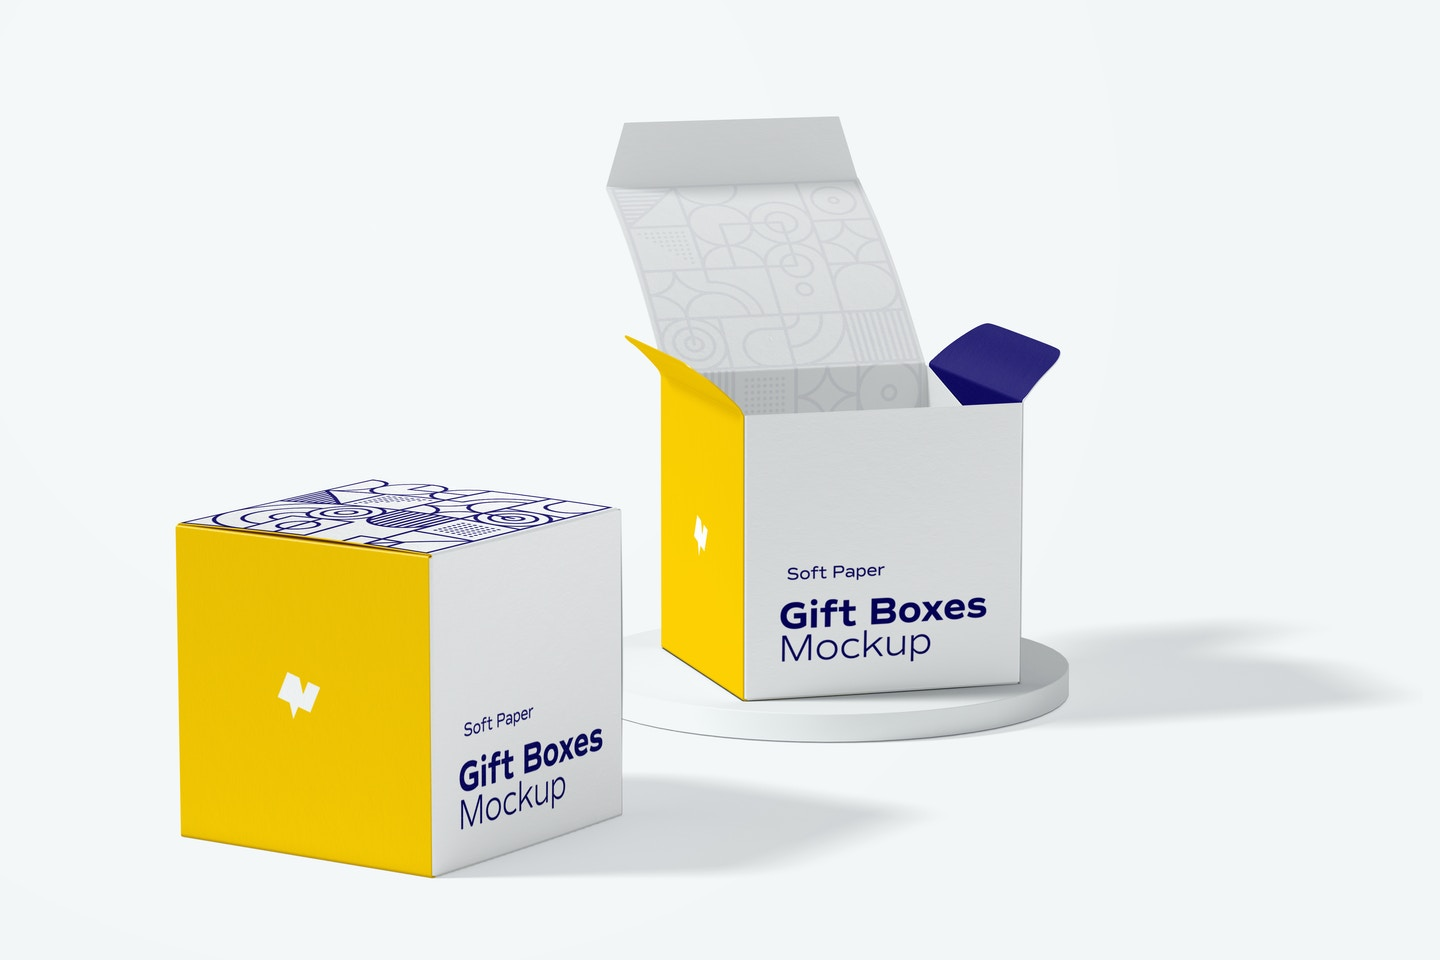 Soft Paper Gift Boxes Mockup, Left View